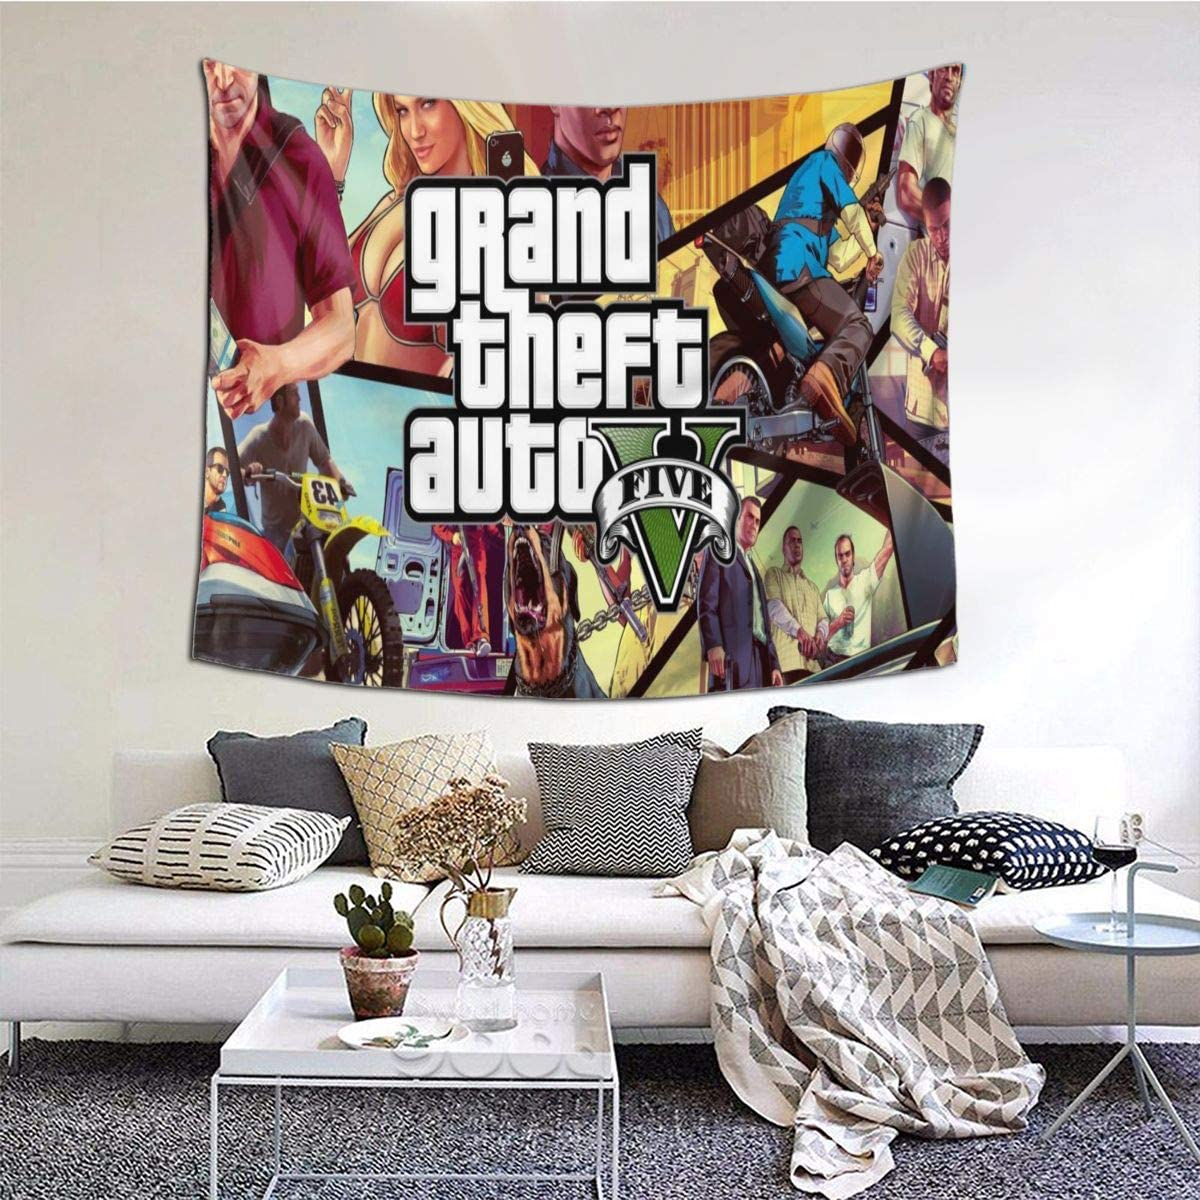 YaoXin Tapestry Wall Tapestry G-rand Th-eft Auto V Wall Hanging Tapestry with Romantic Pictures Art Nature Home Decorations Dorm Decor Tapestries 6051 Inch